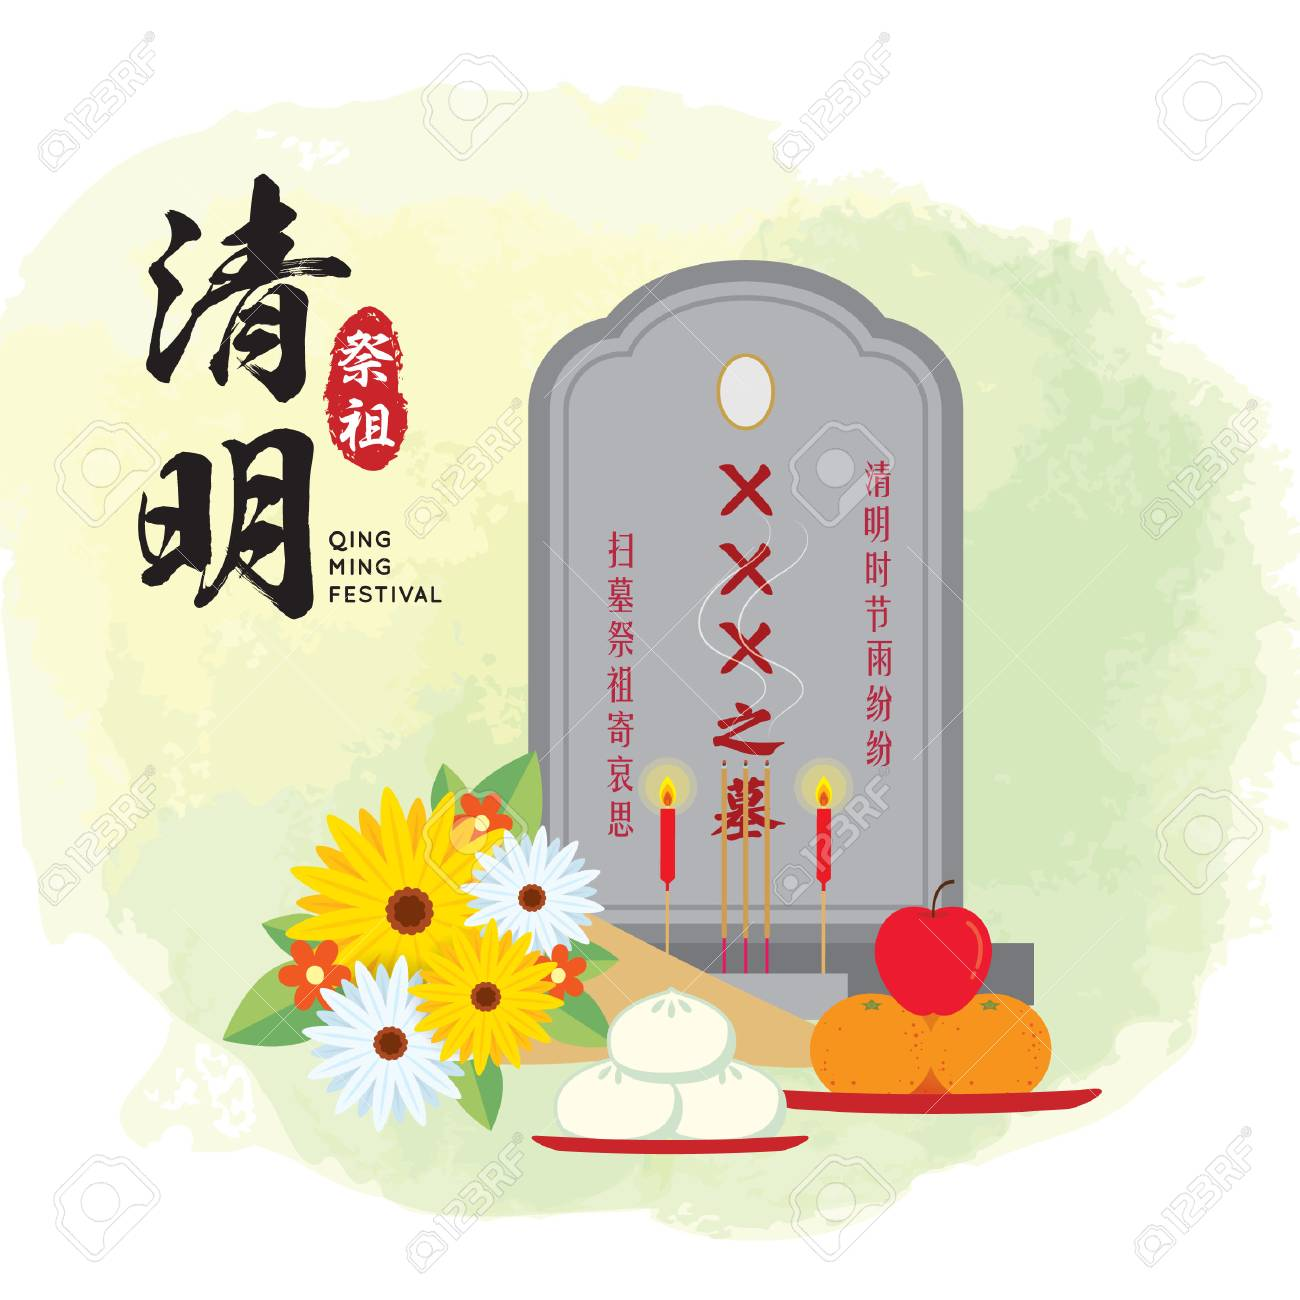 QingMing festival or Tomb-Sweeping Day. Ching Ming festival flat vector illustration. (translation: a drizzling rain falls on Qingming day ; visiting ancestors graves to pay respect) - 119358188